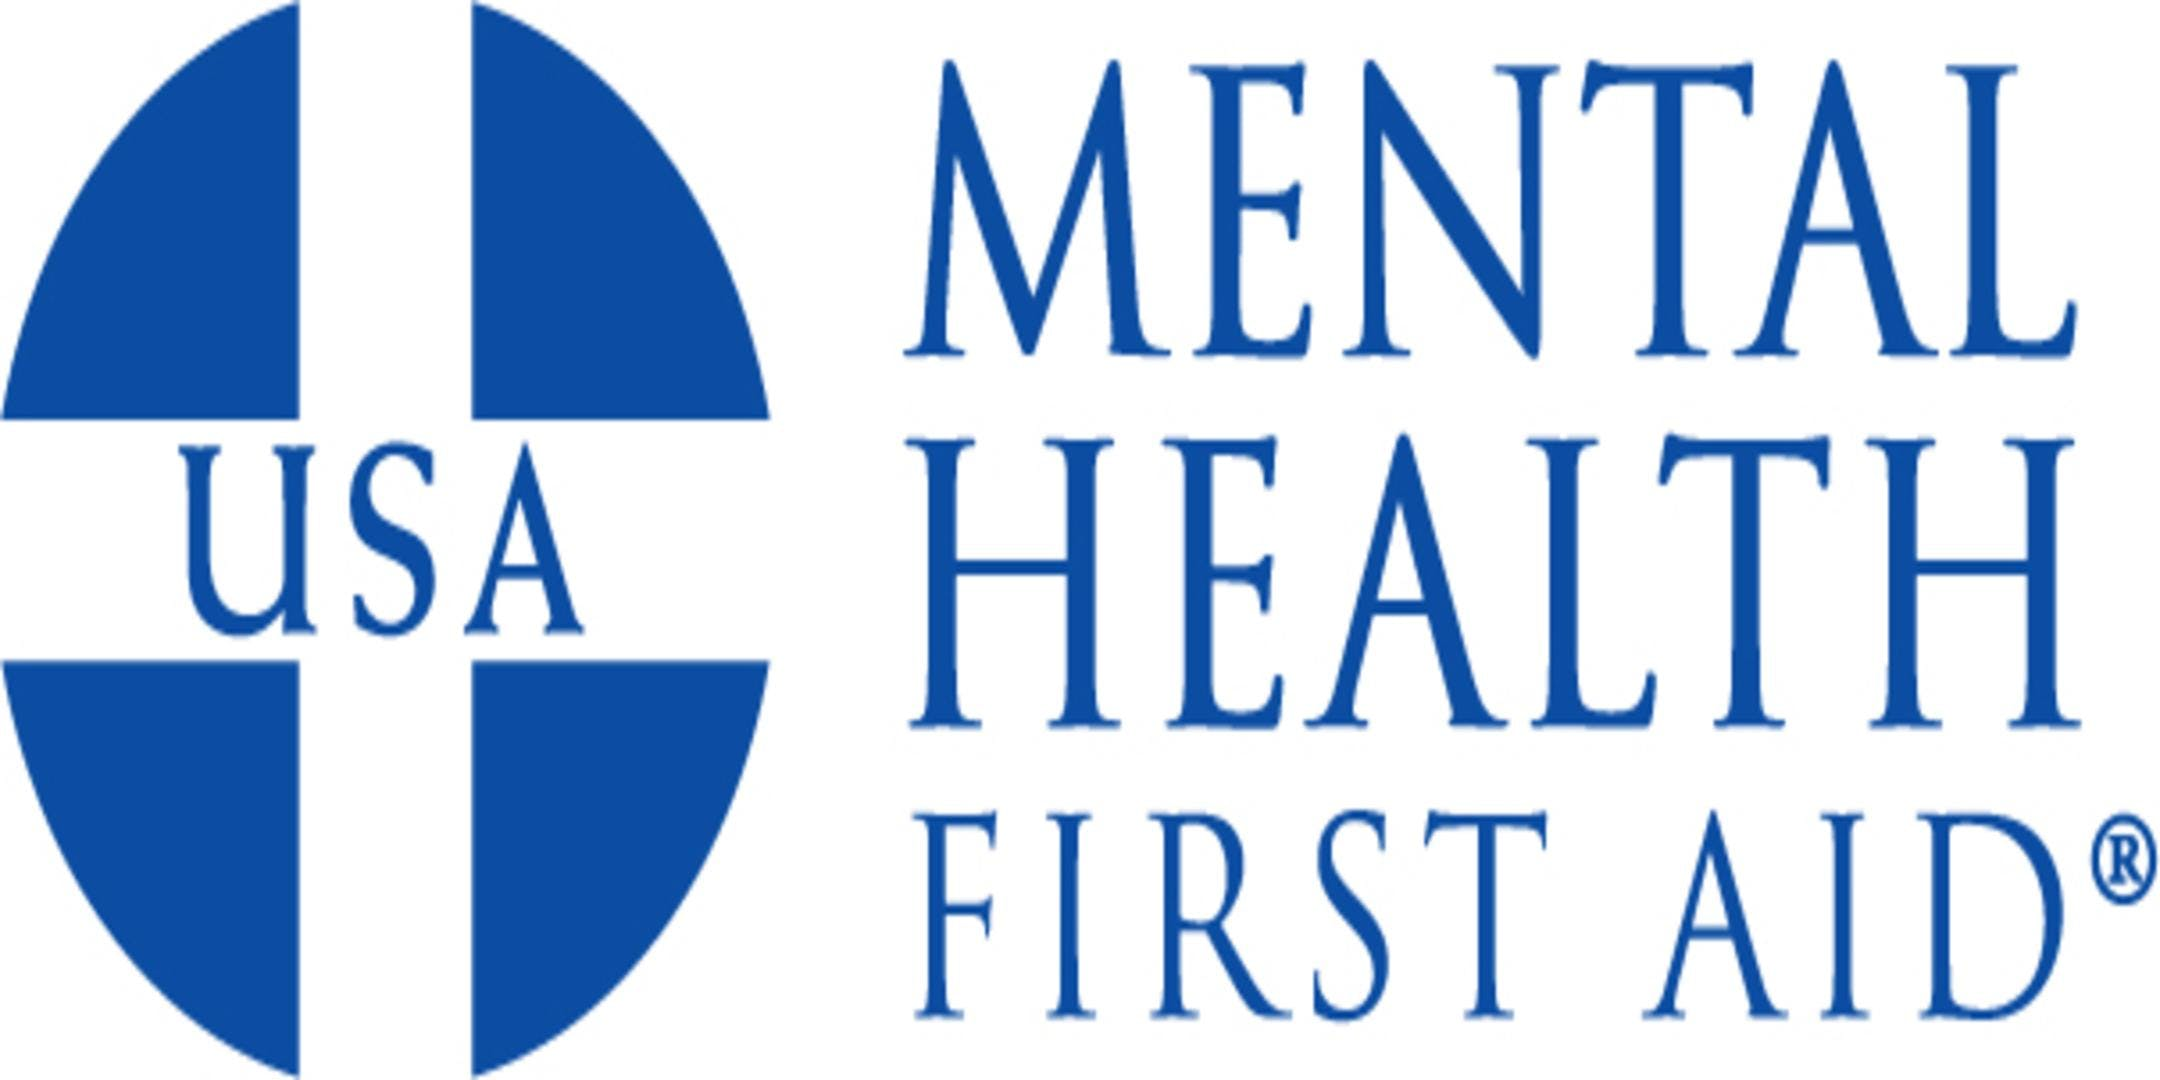 Adult Mental Health First Aid Training (February 21st)